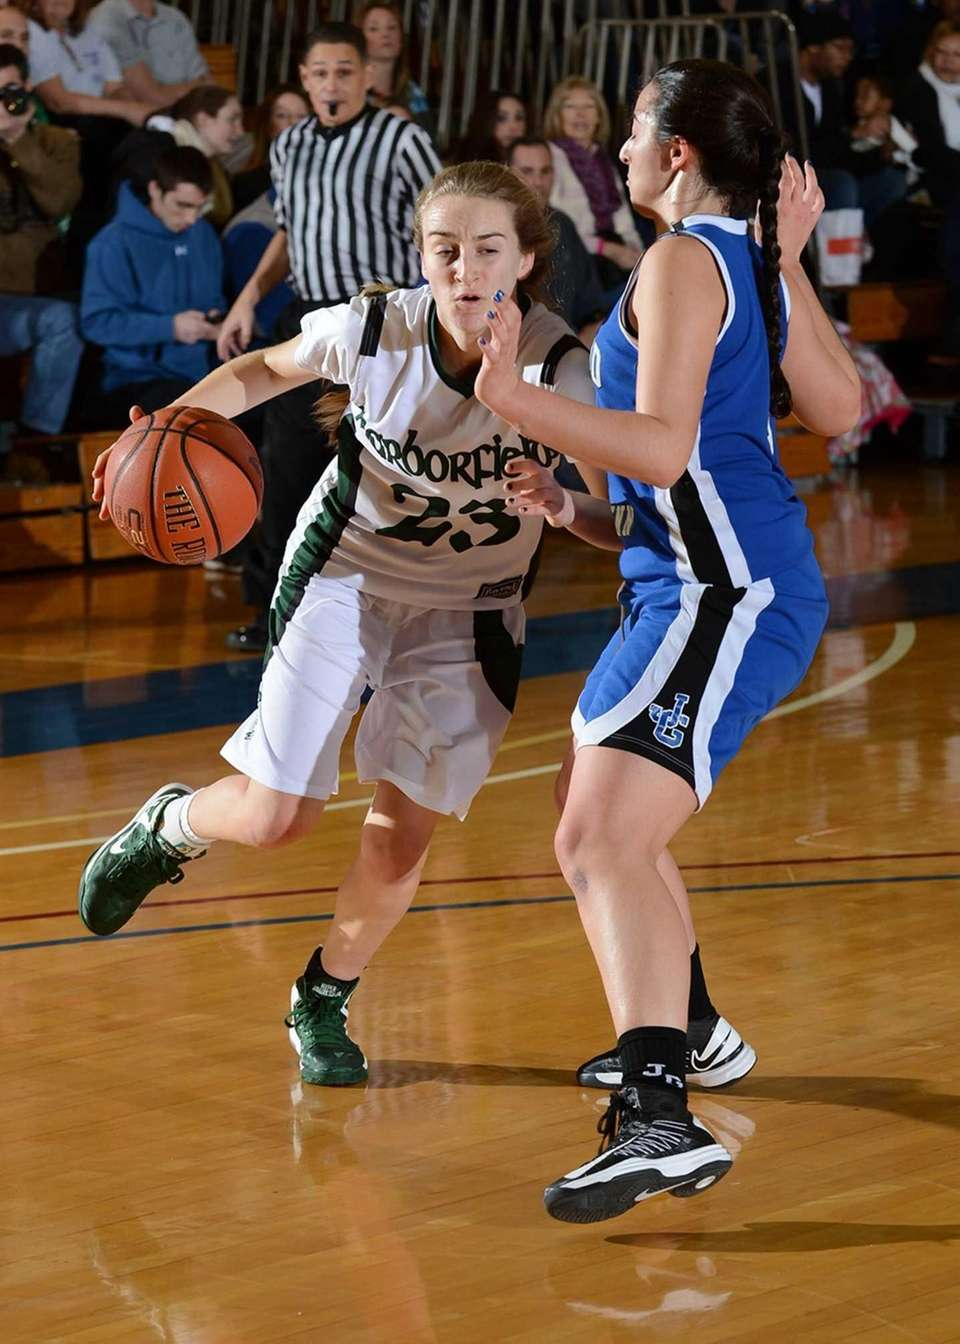 Harborfields' Toni Deren drives hard to the basket